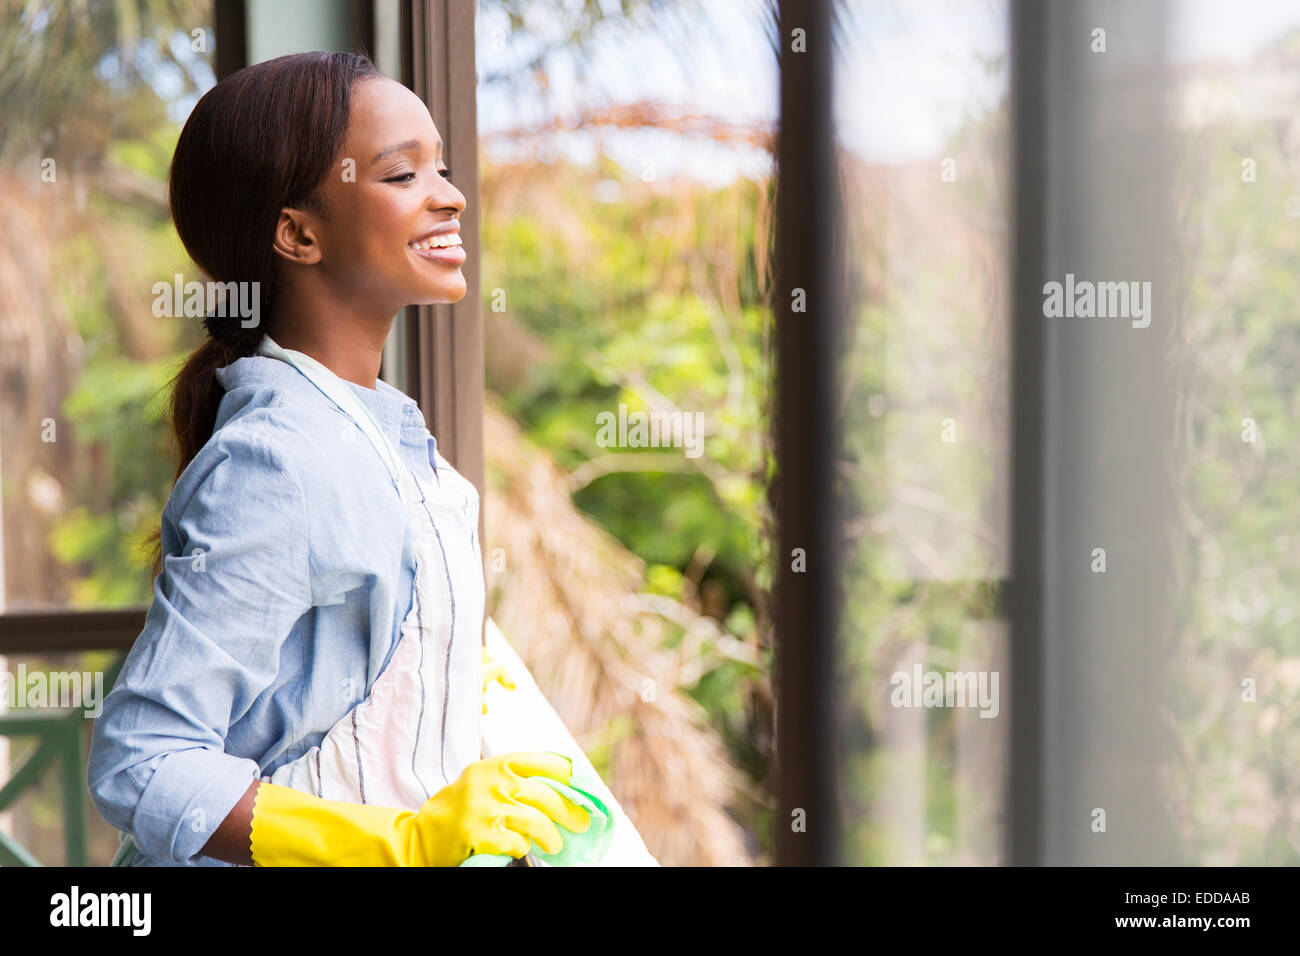 cheerful young African housewife looking through the window - Stock Image